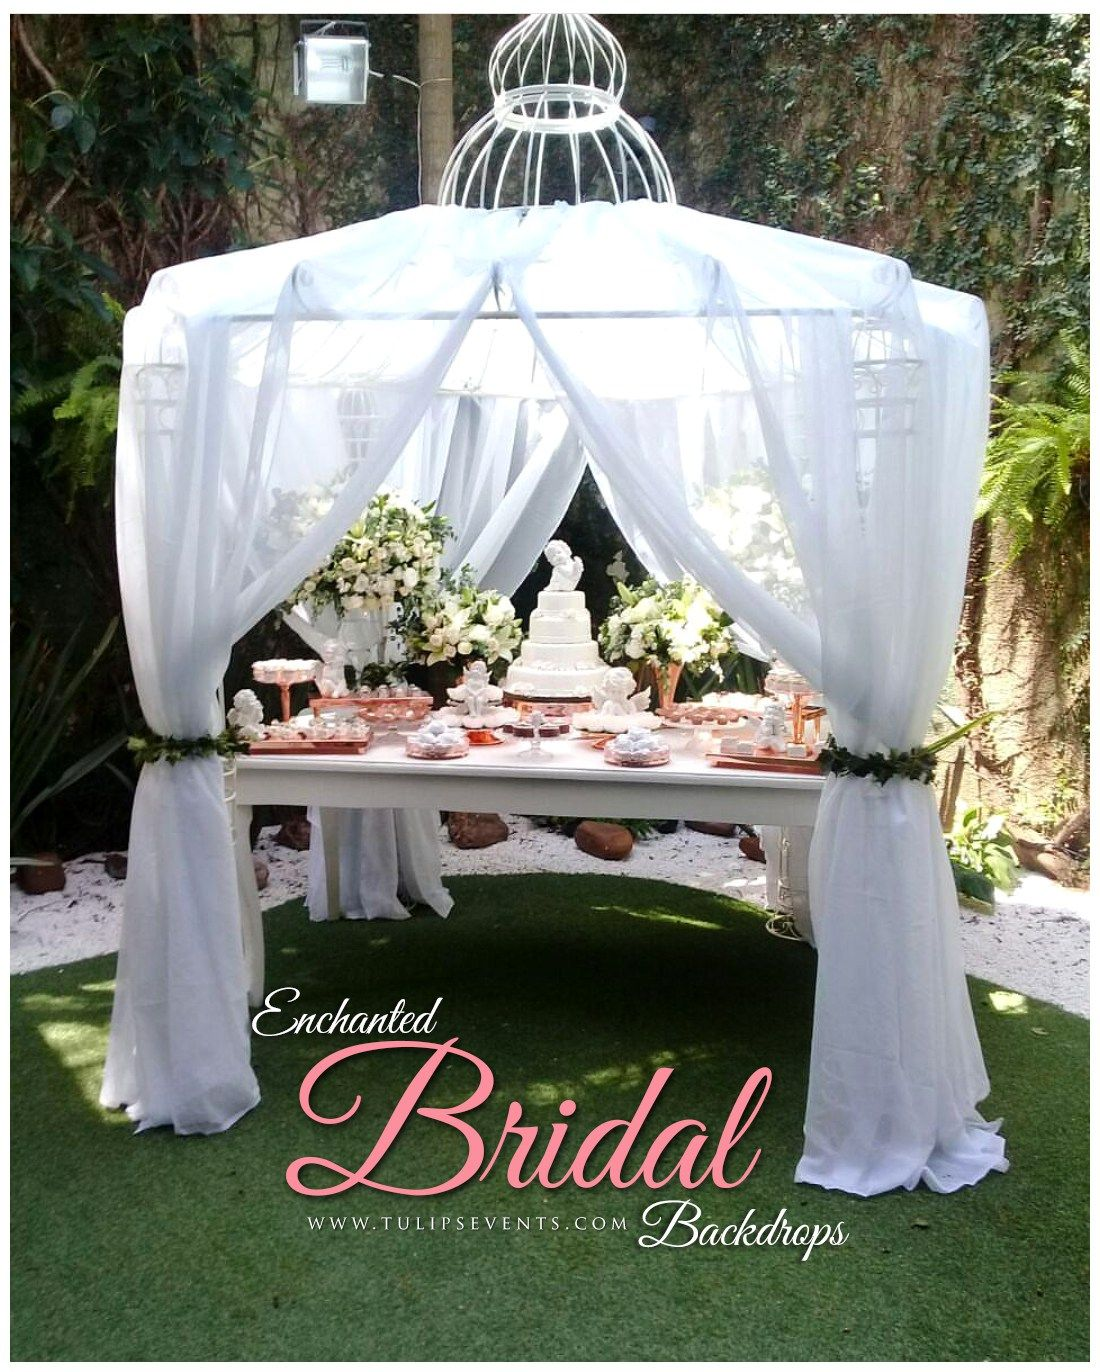 17 Best Bridal Shower Party Themes Decor Ideas In Pakistan Tulips Event Management Bridal Shower Party Theme Bridal Shower Party Bridal Shower Table Decorations